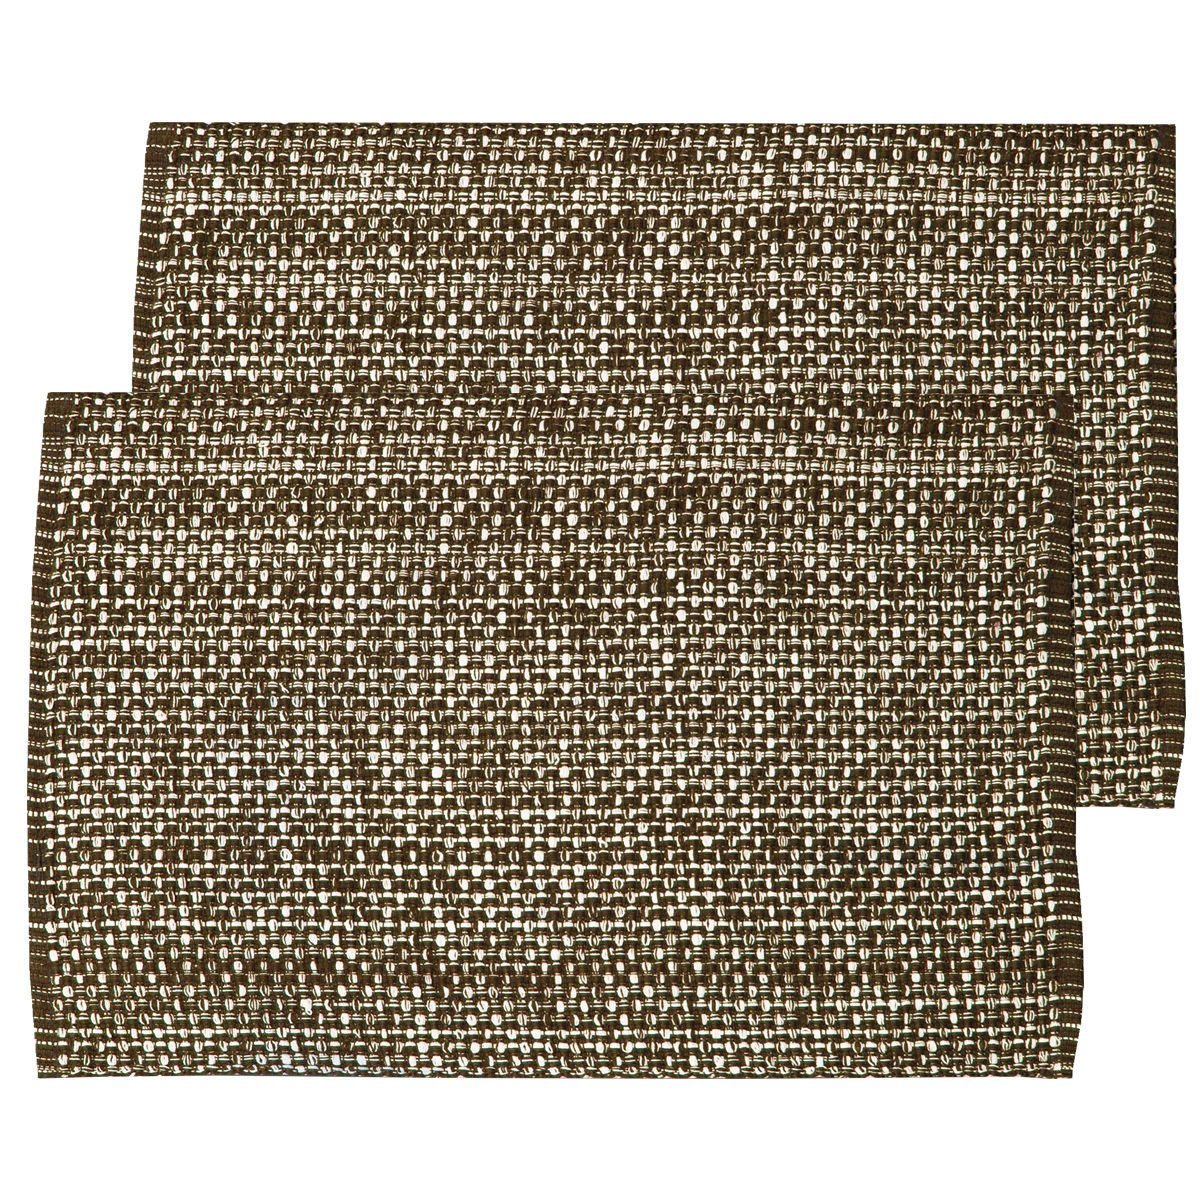 "Unique & Custom {13 x 19'' Inch} Set Pack of 2 Rectangle ""Non-Slip Grip Texture"" Large Table Placemats Made of Washable Flexible 100% Cotton w/Dark Woven Rustic Country Modern Design [Brown Color]"